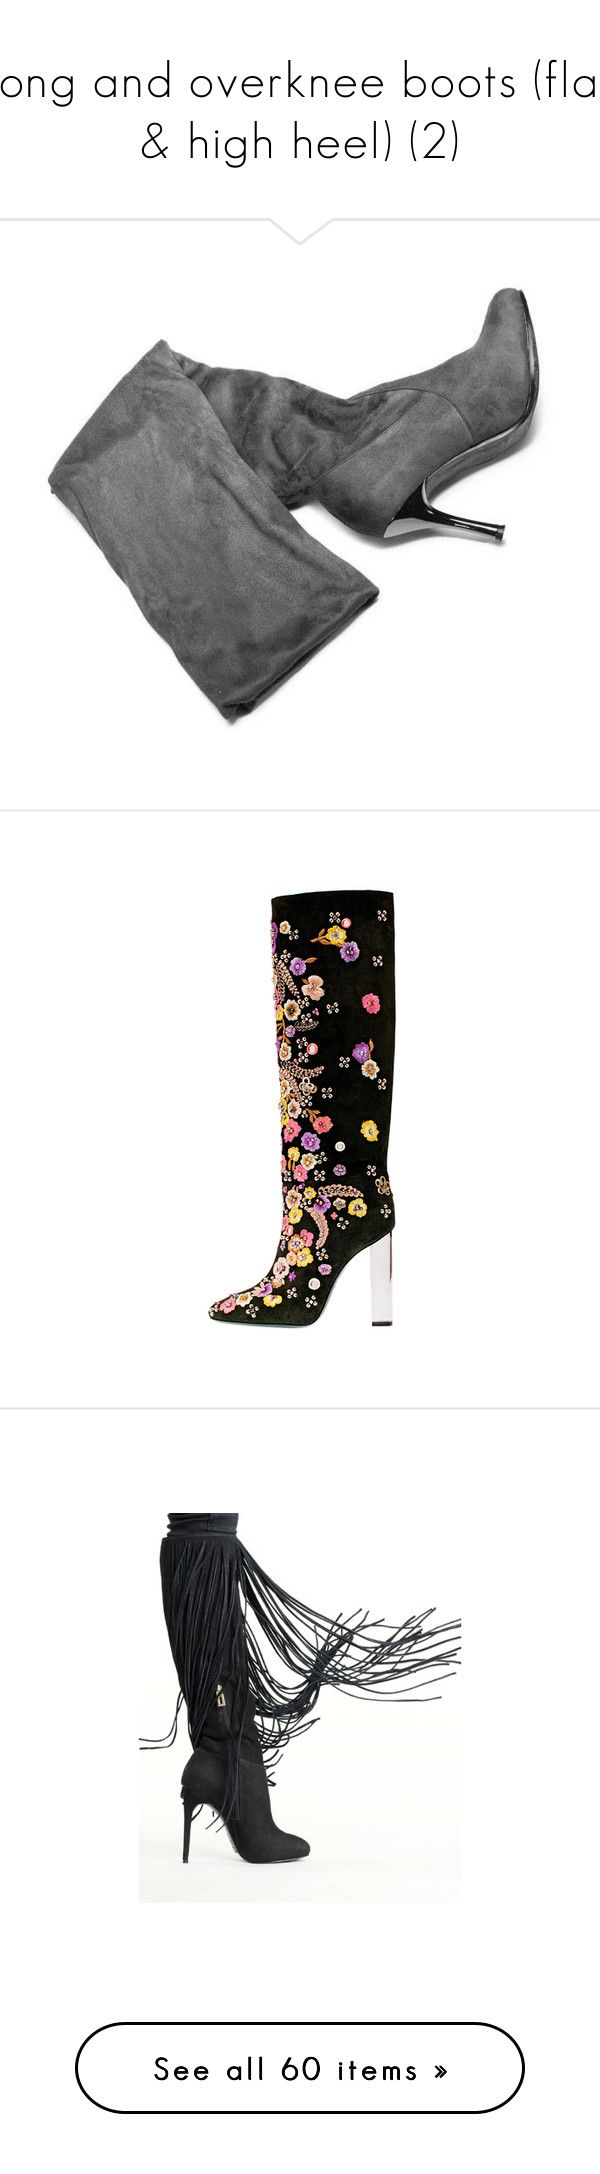 """""""long and overknee boots (flat & high heel) (2)"""" by bonadea007 ❤ liked on Polyvore featuring shoes, boots, long boots, over the knee boots, over-knee boots, stretch boots, above-knee boots, black boots, suede high heel boots and long high heel boots"""